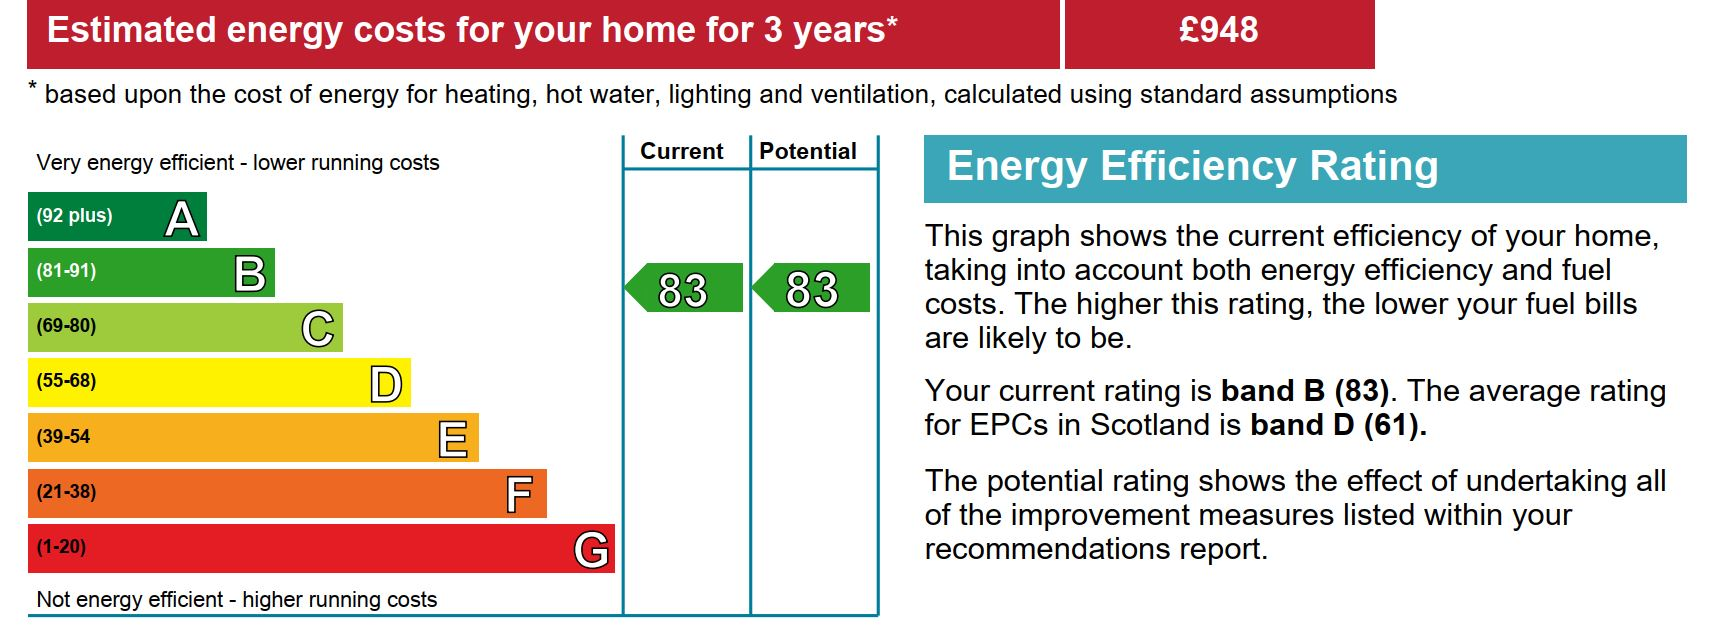 Example of high EPC rating band B